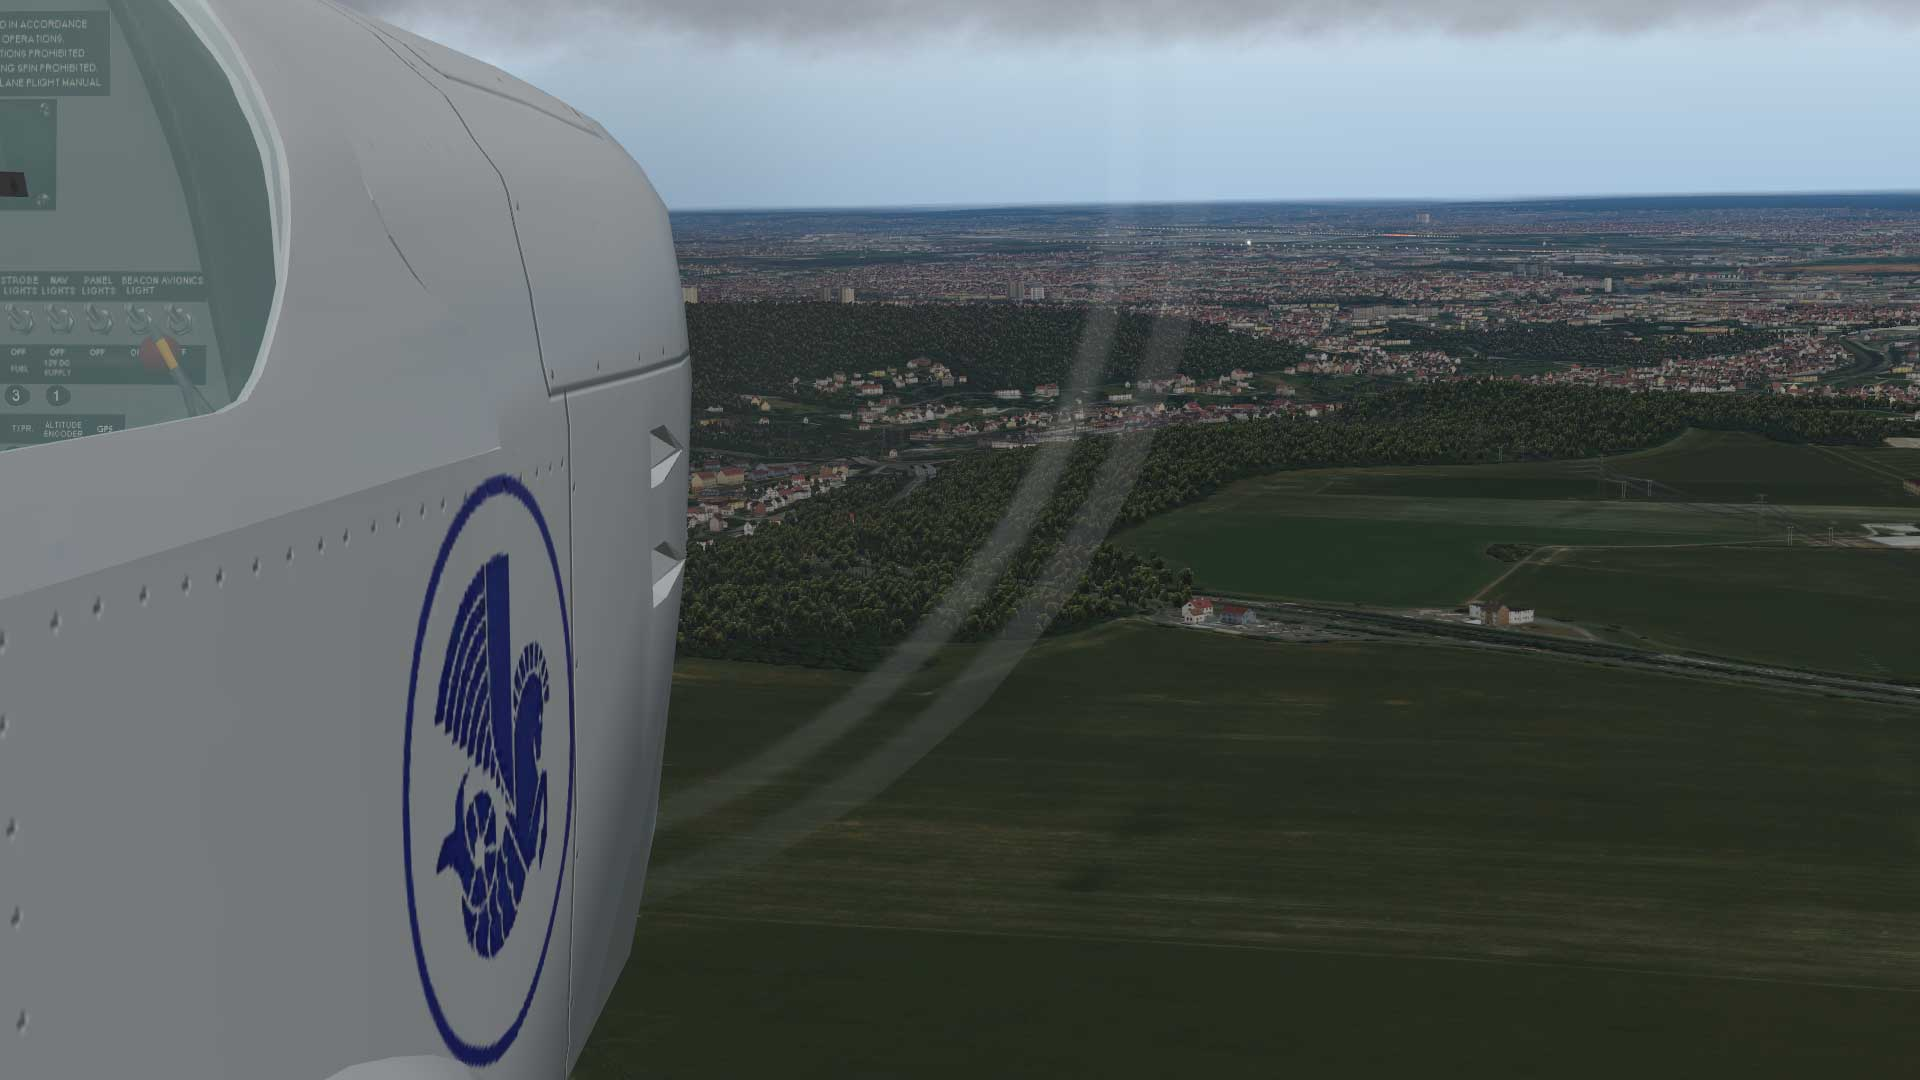 Le Briefing at LFPL - X-Plane 11 Screenshots - X-Plane Org Forum